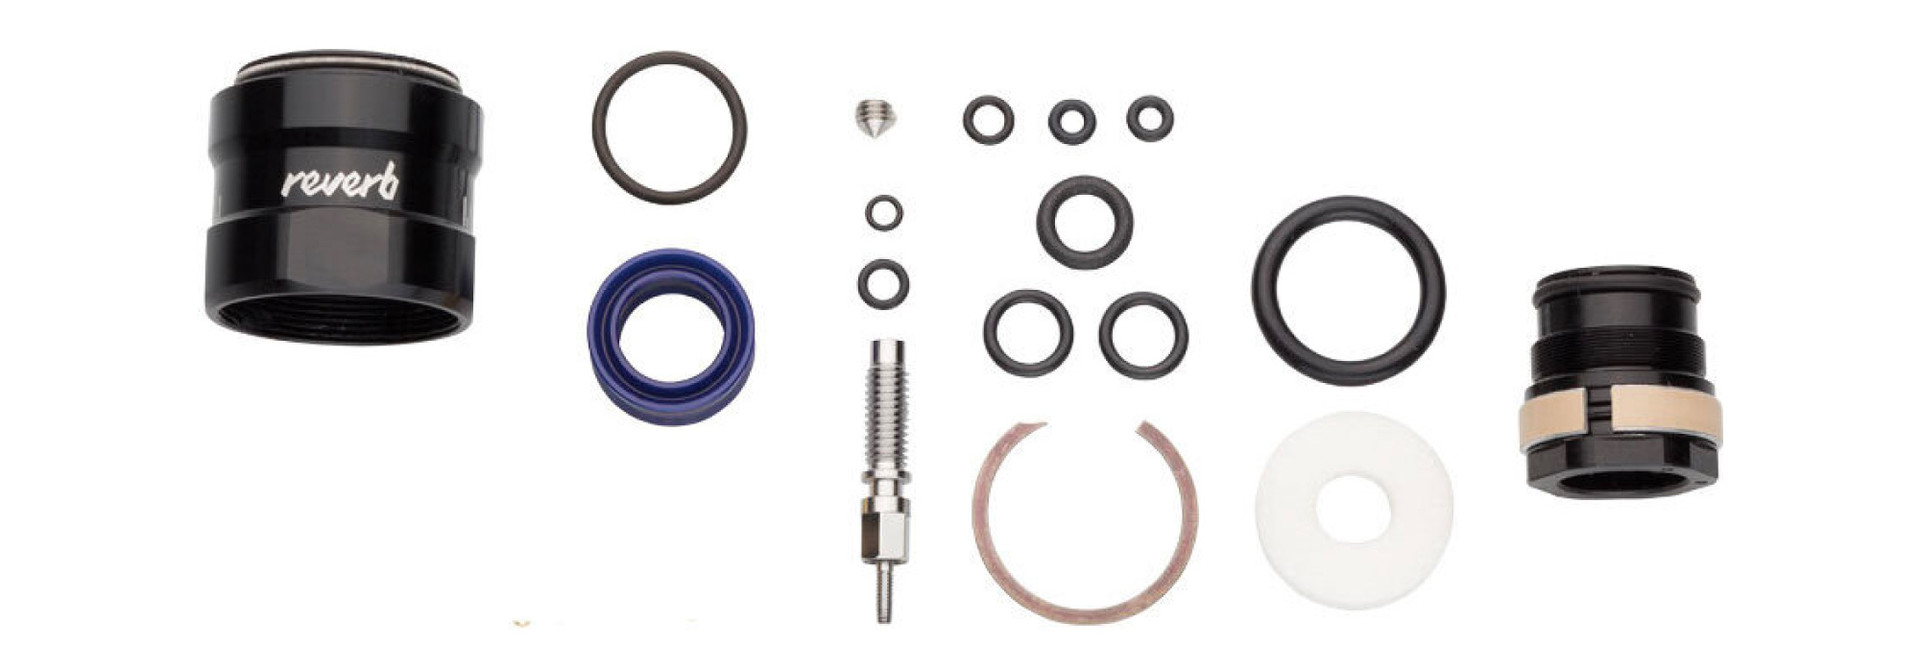 Reverb Stealth B1 Service Kit 400 Hour/2 Year